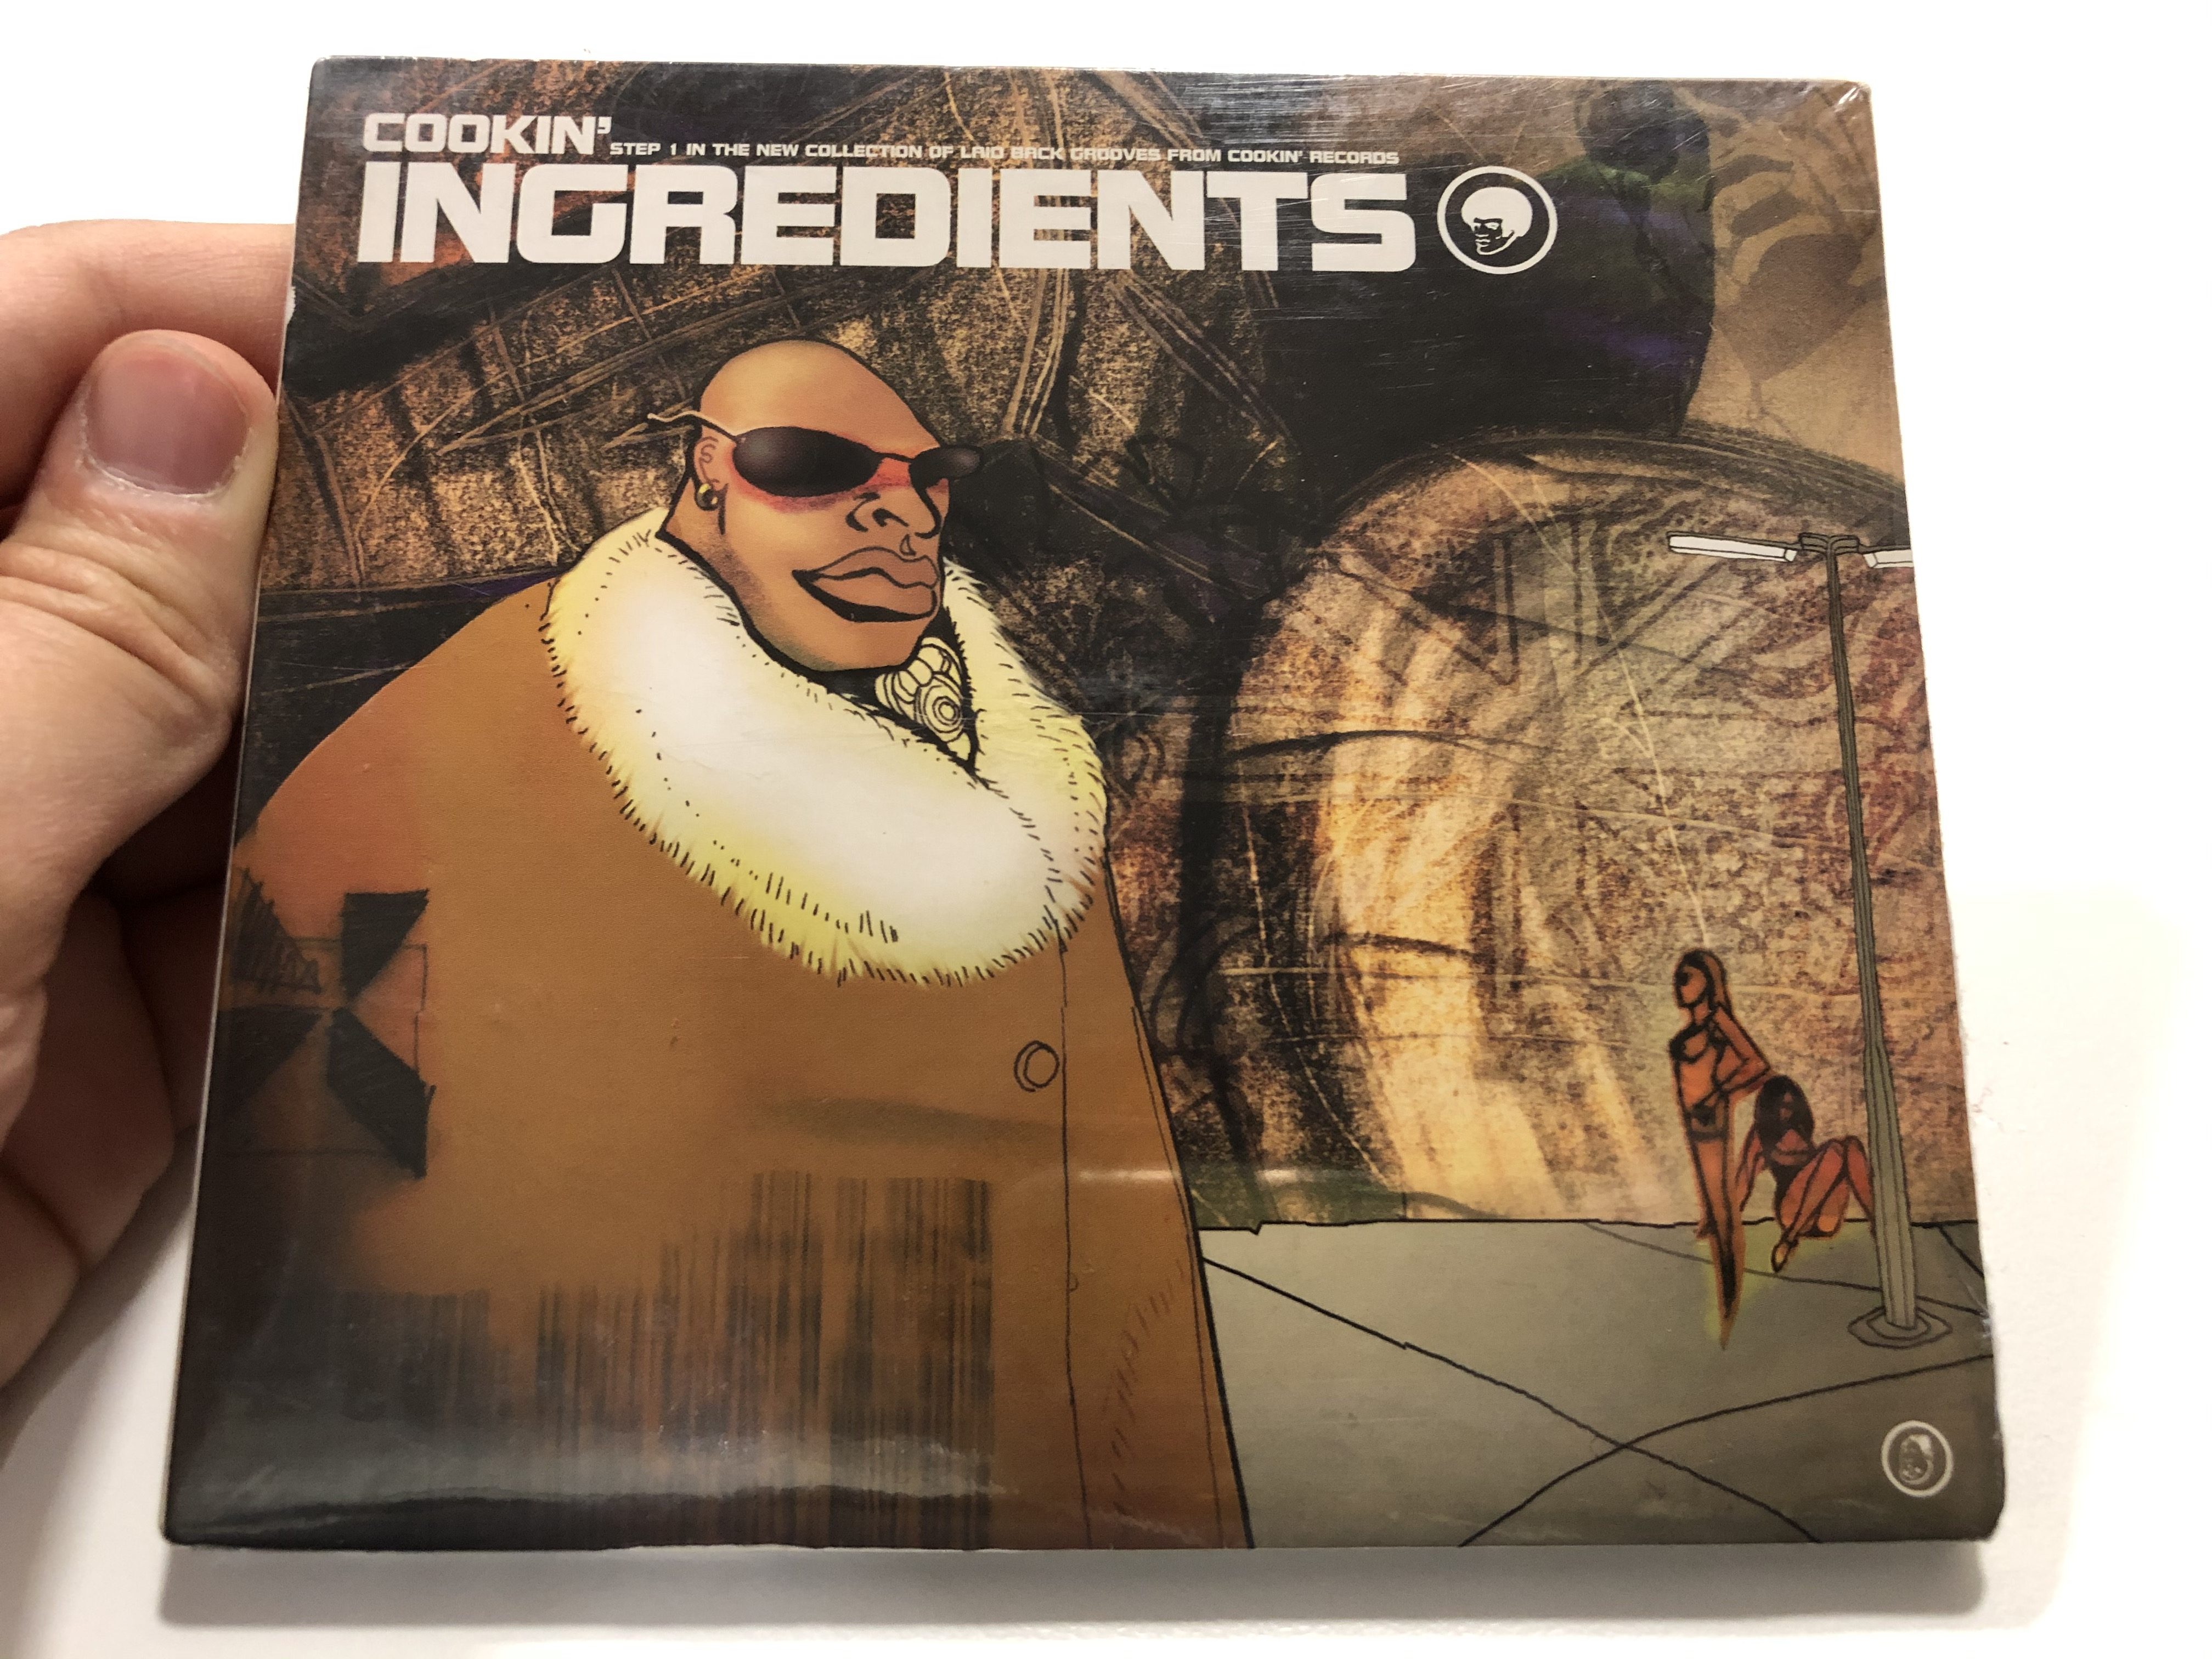 ingredients-cookin-step-1-in-the-new-collection-of-laid-back-grroves-from-cookin-records-cookin-records-audio-cd-2001-ckb01-1-.jpg